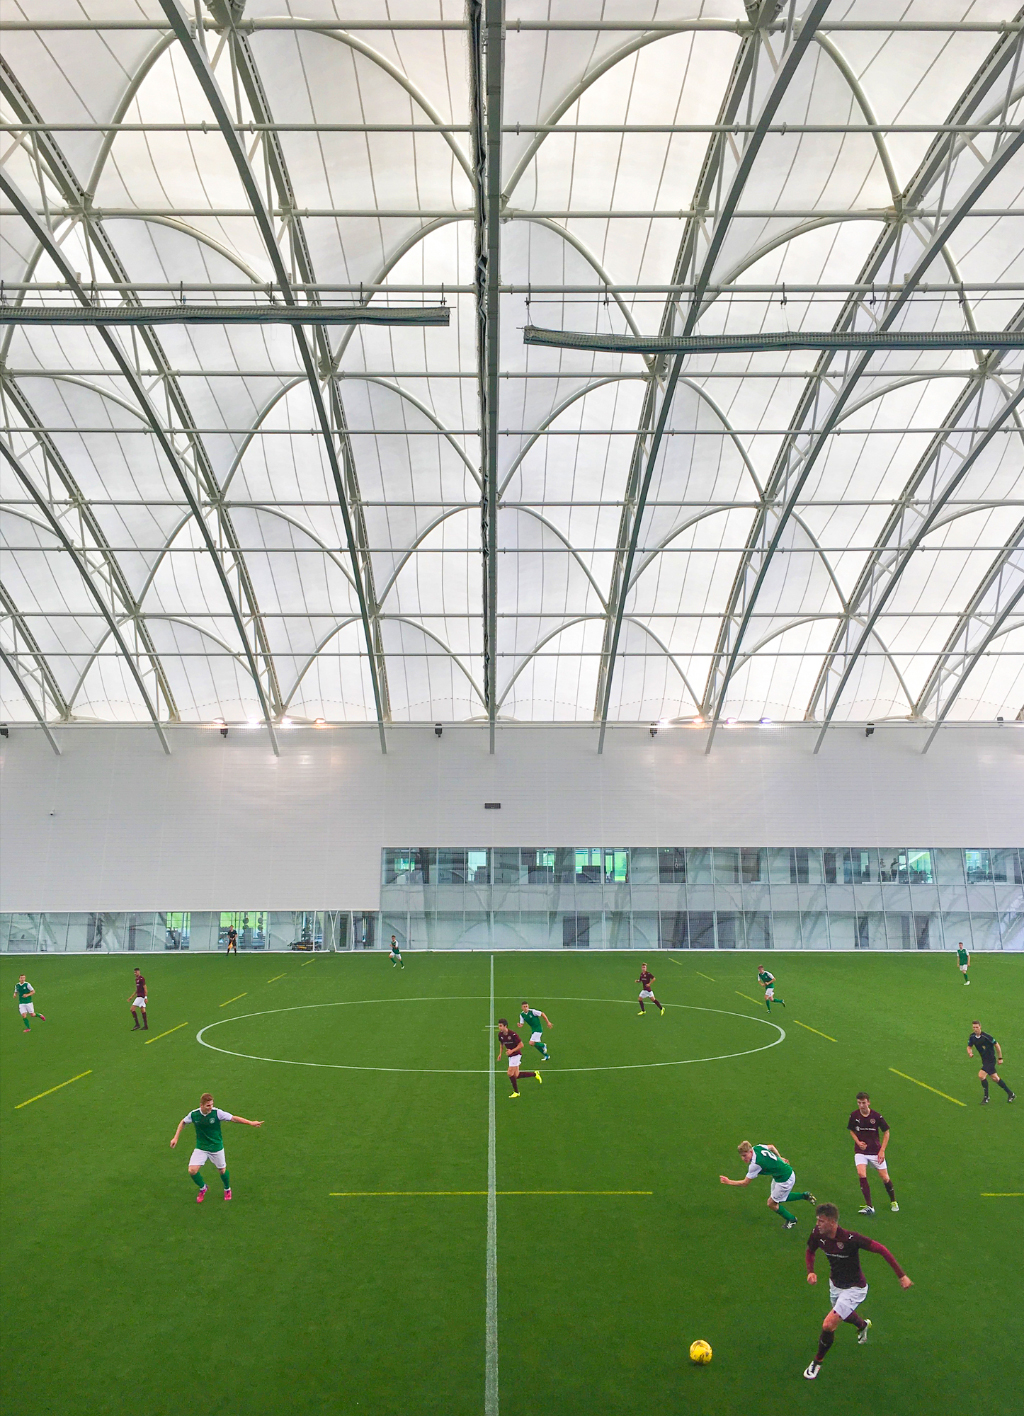 First Competitive Goal Scored at Oriam